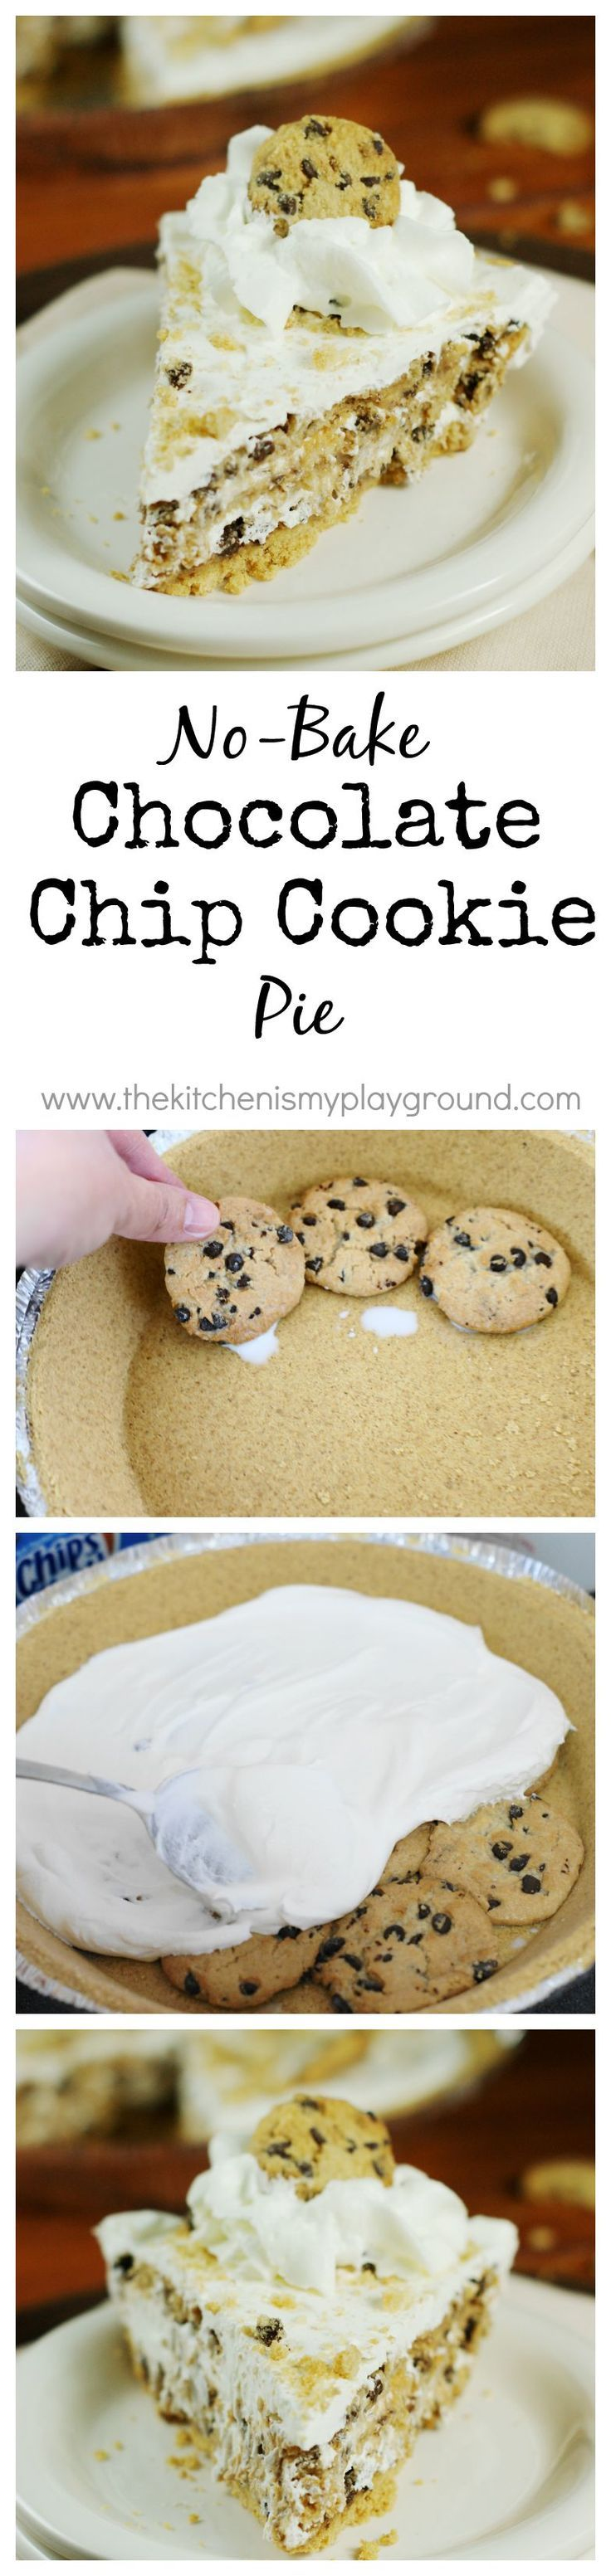 No-Bake Chocolate Chip Cookie Pie: four simple ingredients come together to create one delicious pie. you won't believe how easy this is!